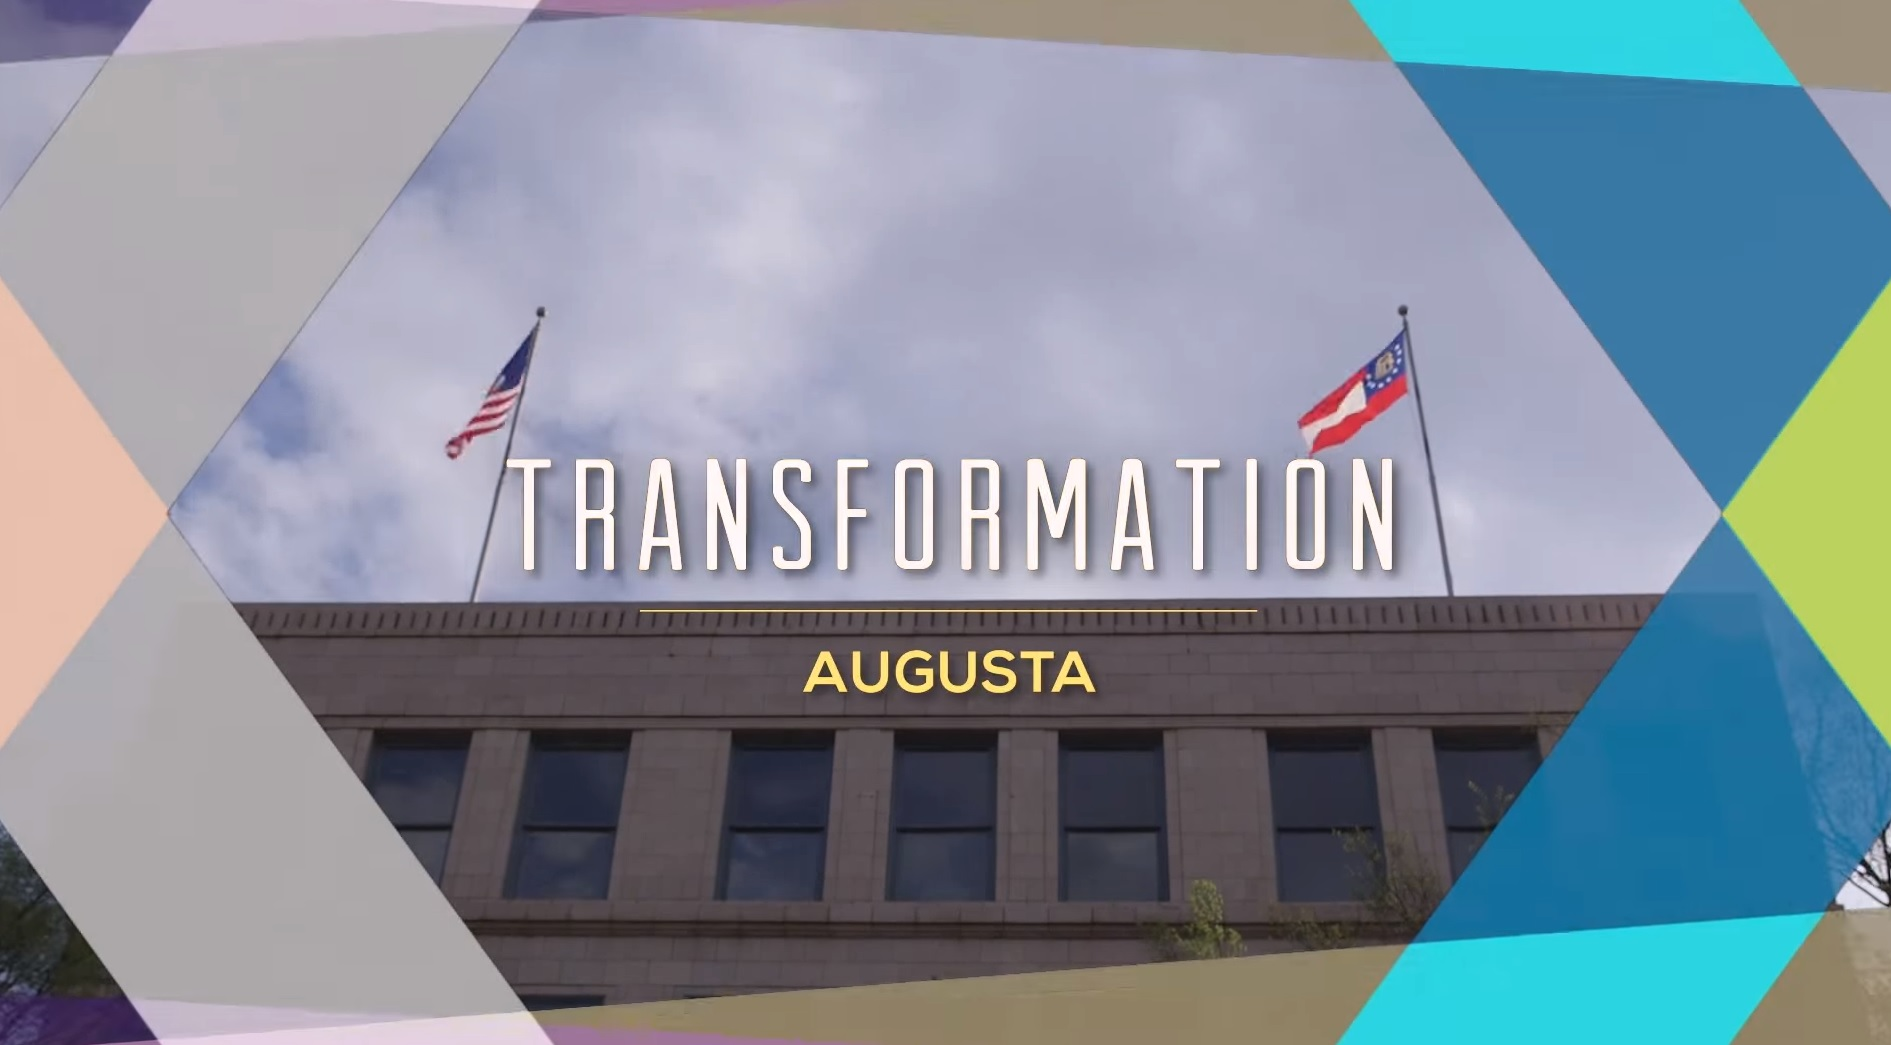 Transformation Augusta #1 Thumbnail